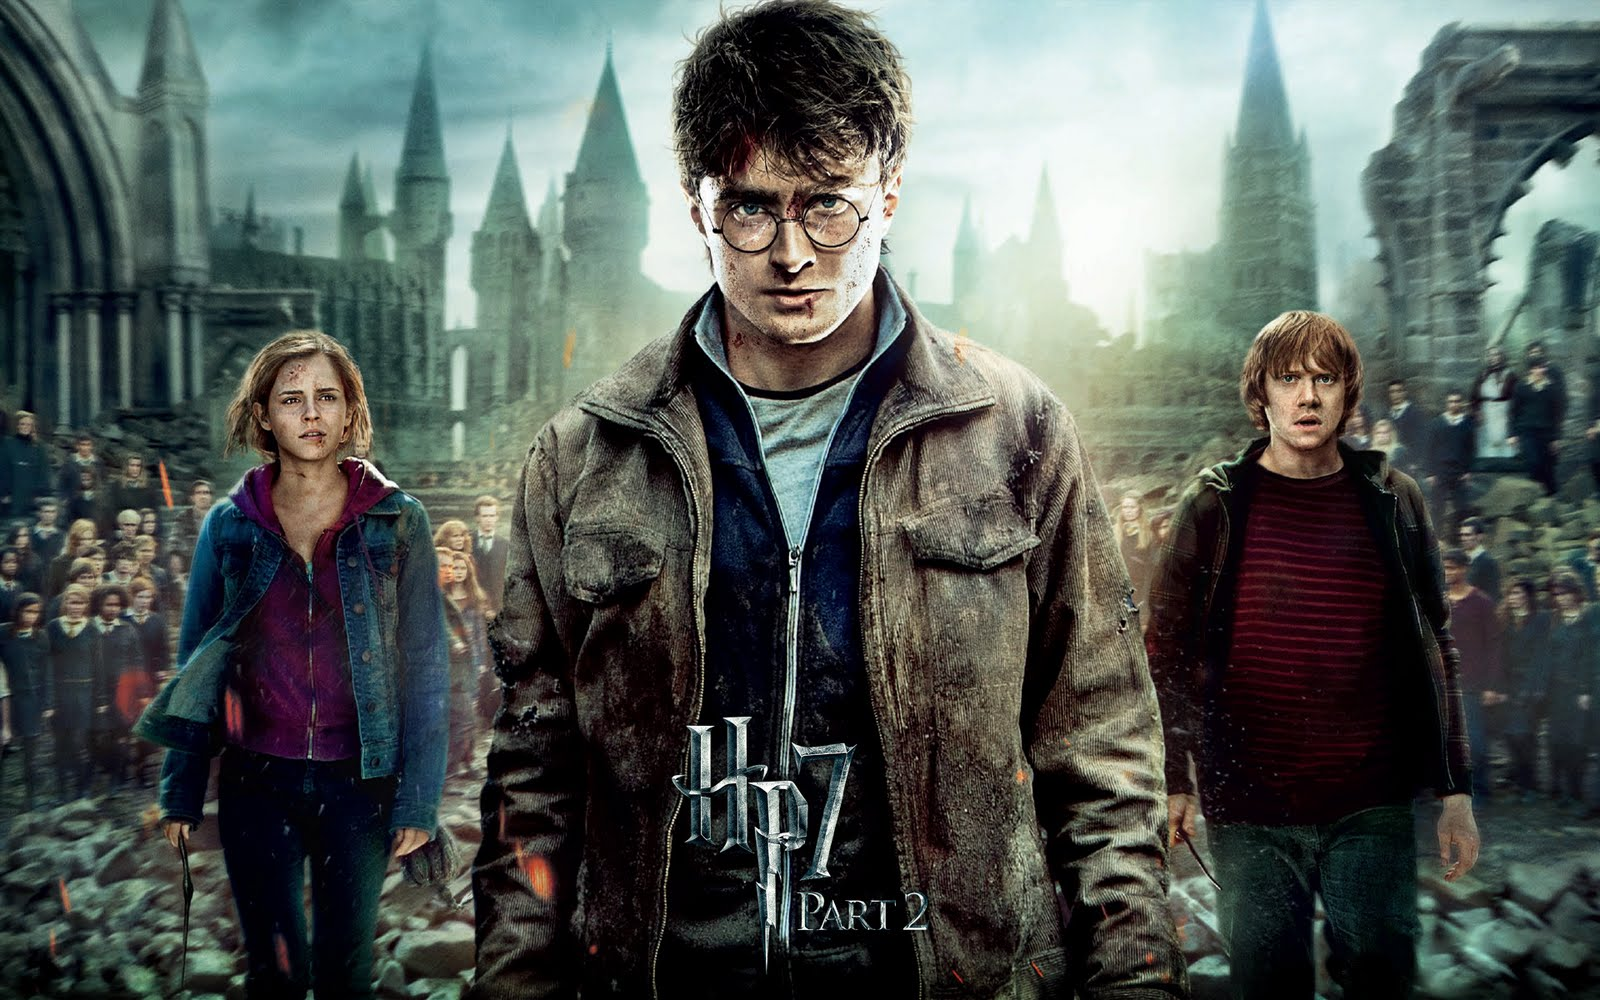 http://2.bp.blogspot.com/-HFaADIv6ZCw/Thl8lrr3s1I/AAAAAAAAAEU/pQViYyj86CM/s1600/0001+harry_potter_and_the_deathly_hallows_part_2-wide.jpg